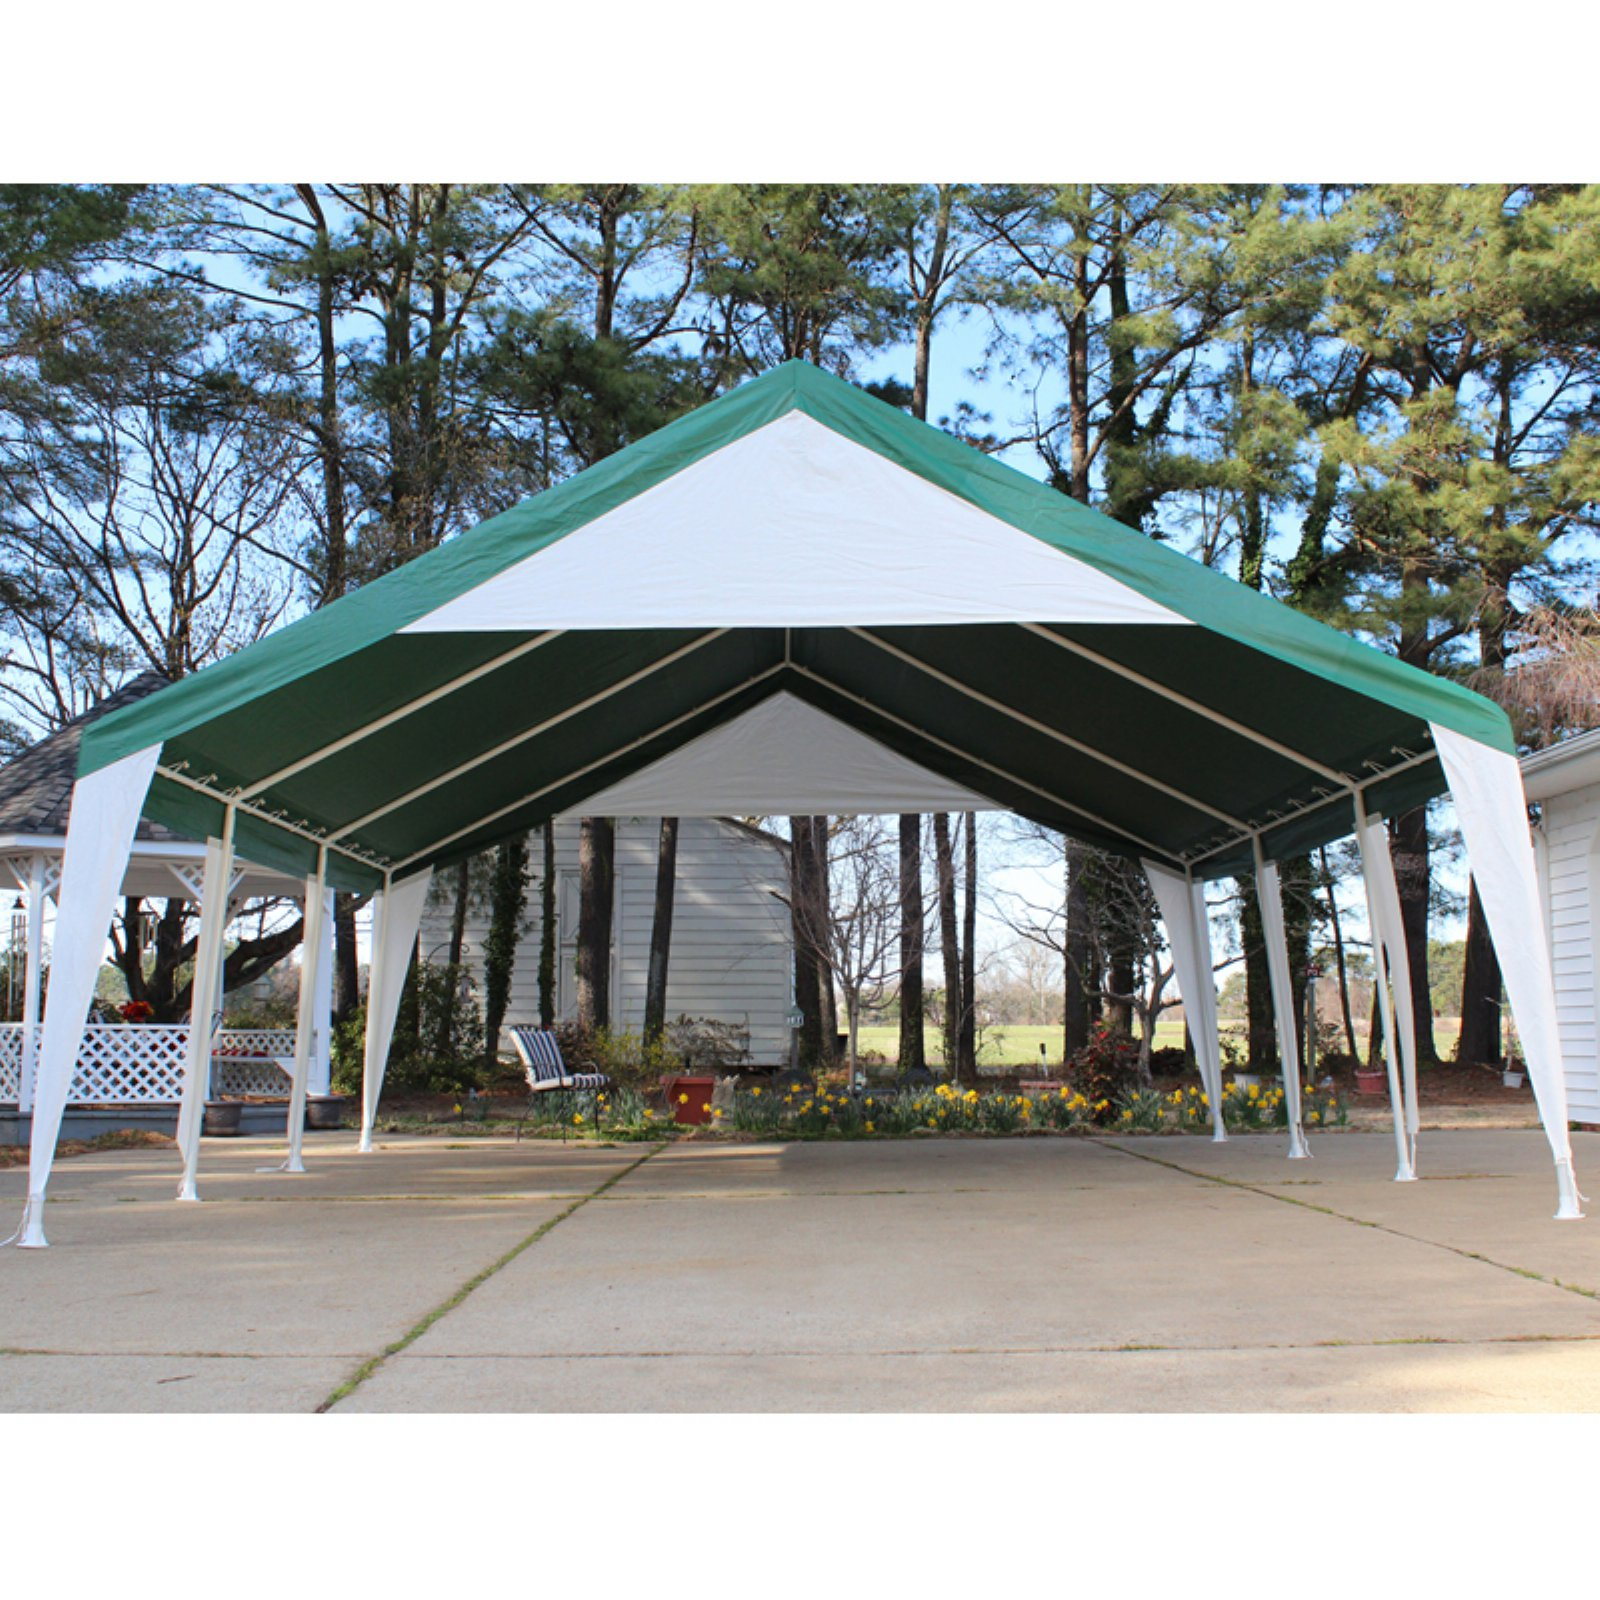 King Canopy 20 x 20 ft. Green and White Event Tent Image 2 of 3  sc 1 st  Walmart & King Canopy 20 x 20 ft. Green and White Event Tent - Walmart.com